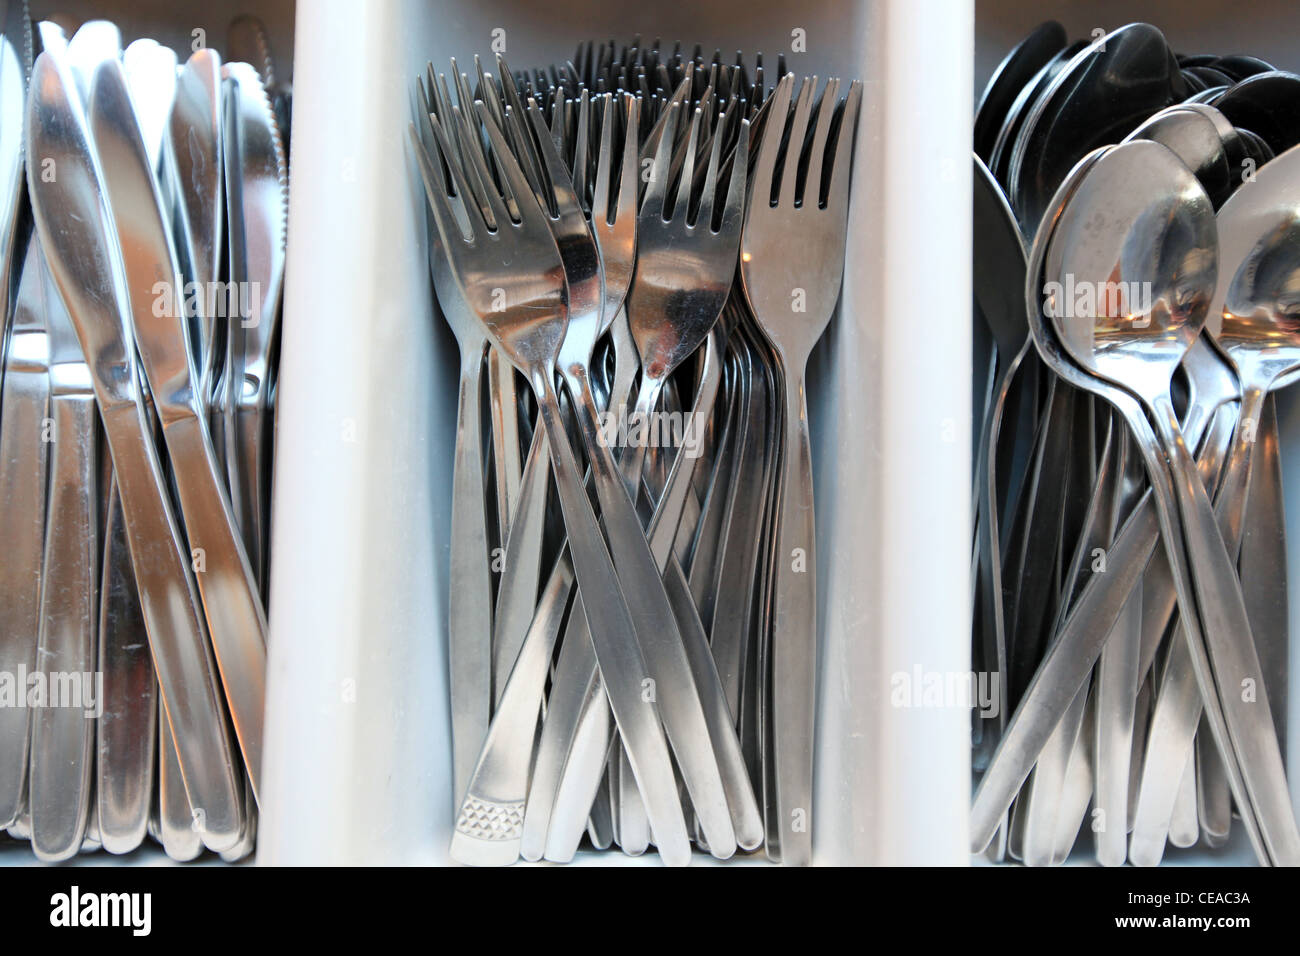 Sorted cutlery with spoons, knives and forks - Stock Image